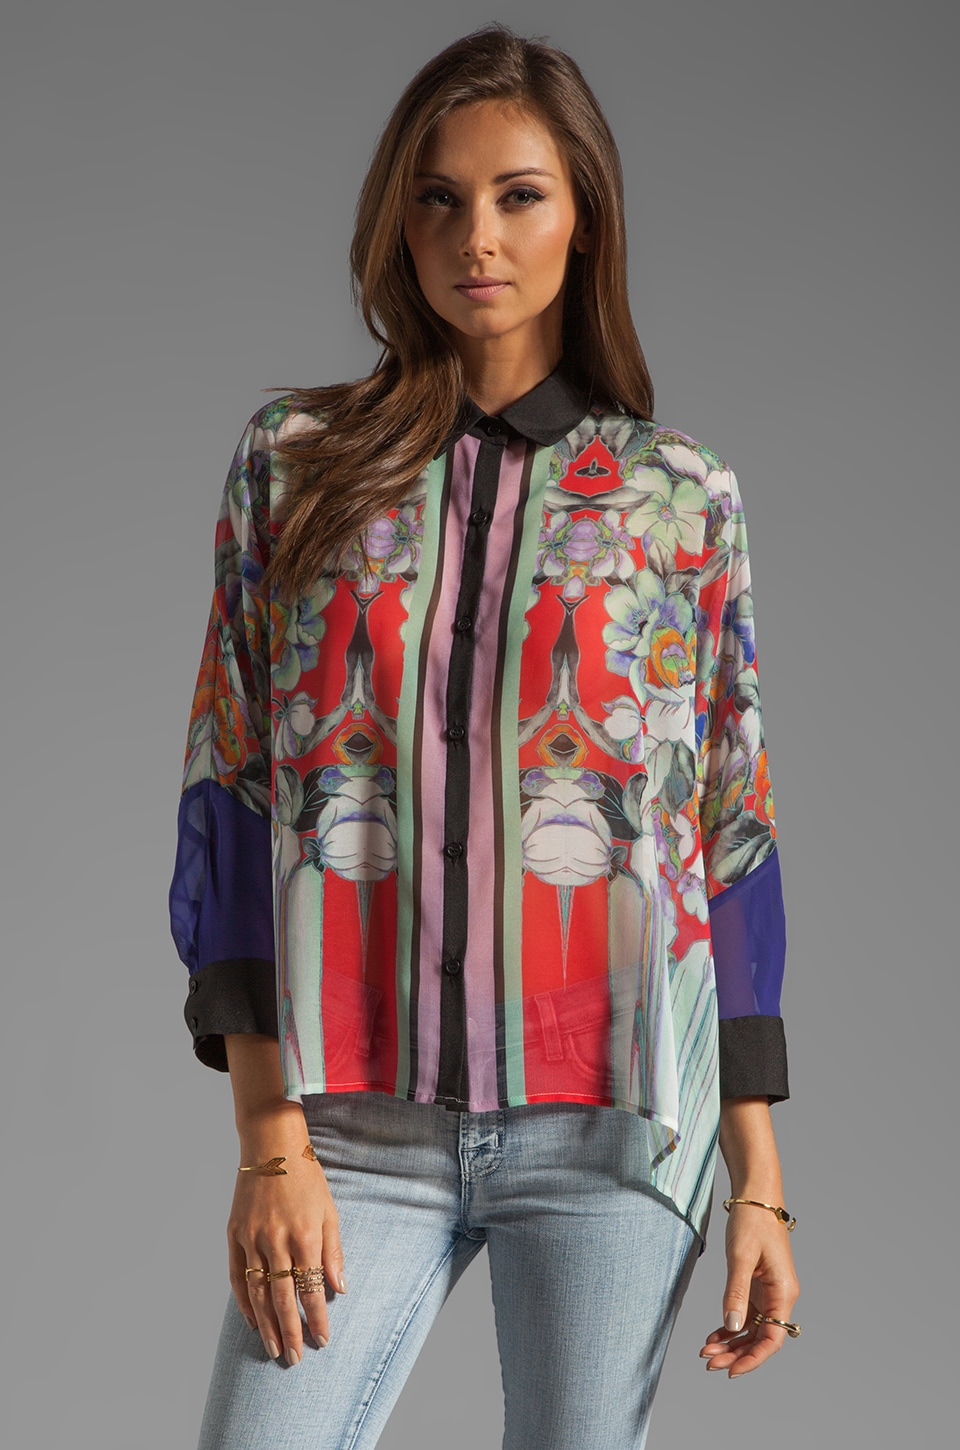 Clover Canyon Flower Tracers Blouse in Red